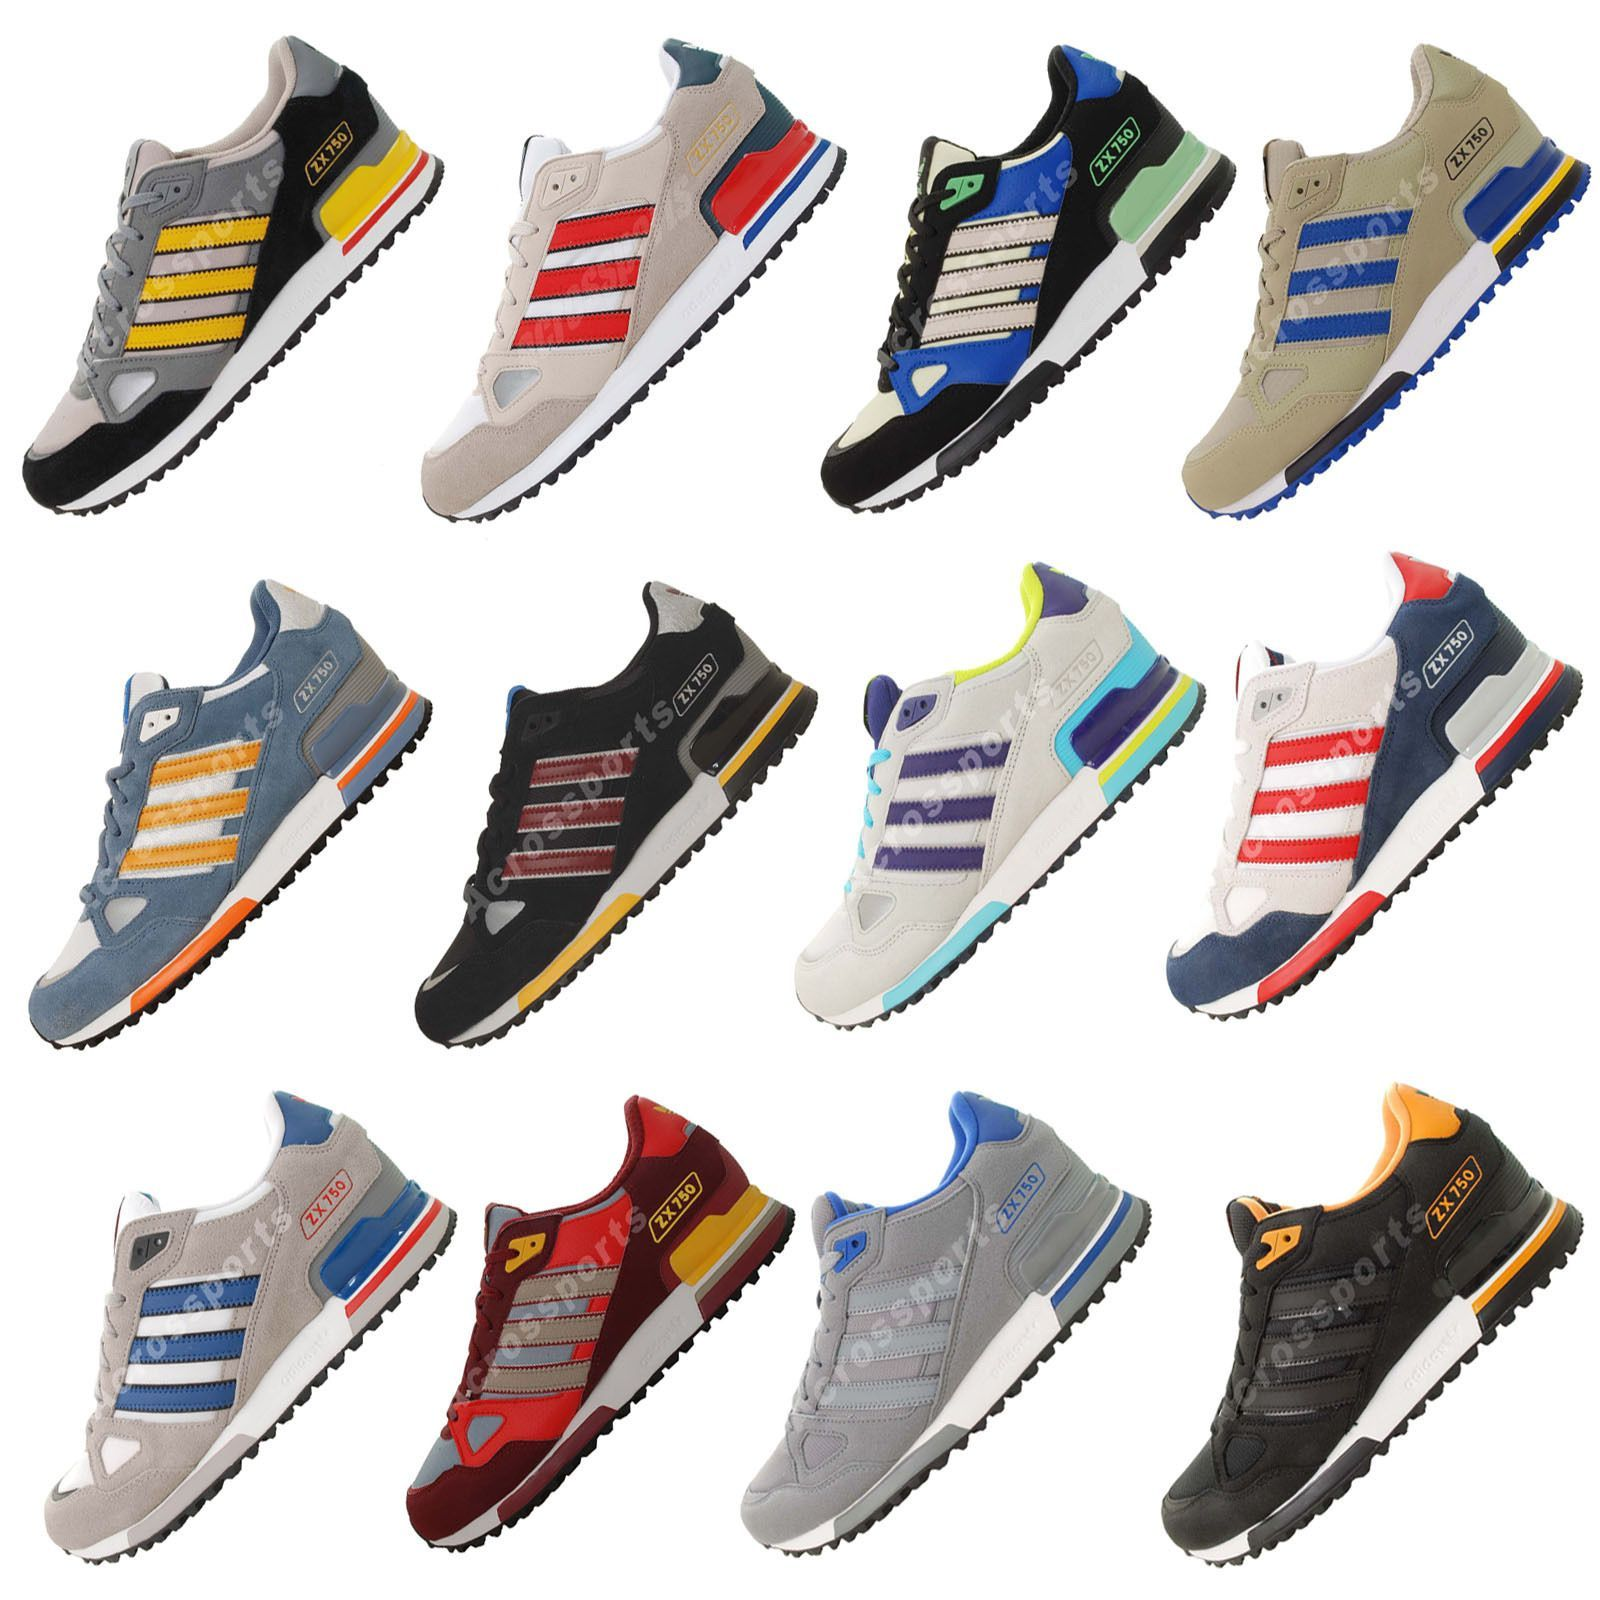 Adidas 750 ???? | Sneakers men fashion, Mens shoes sneakers